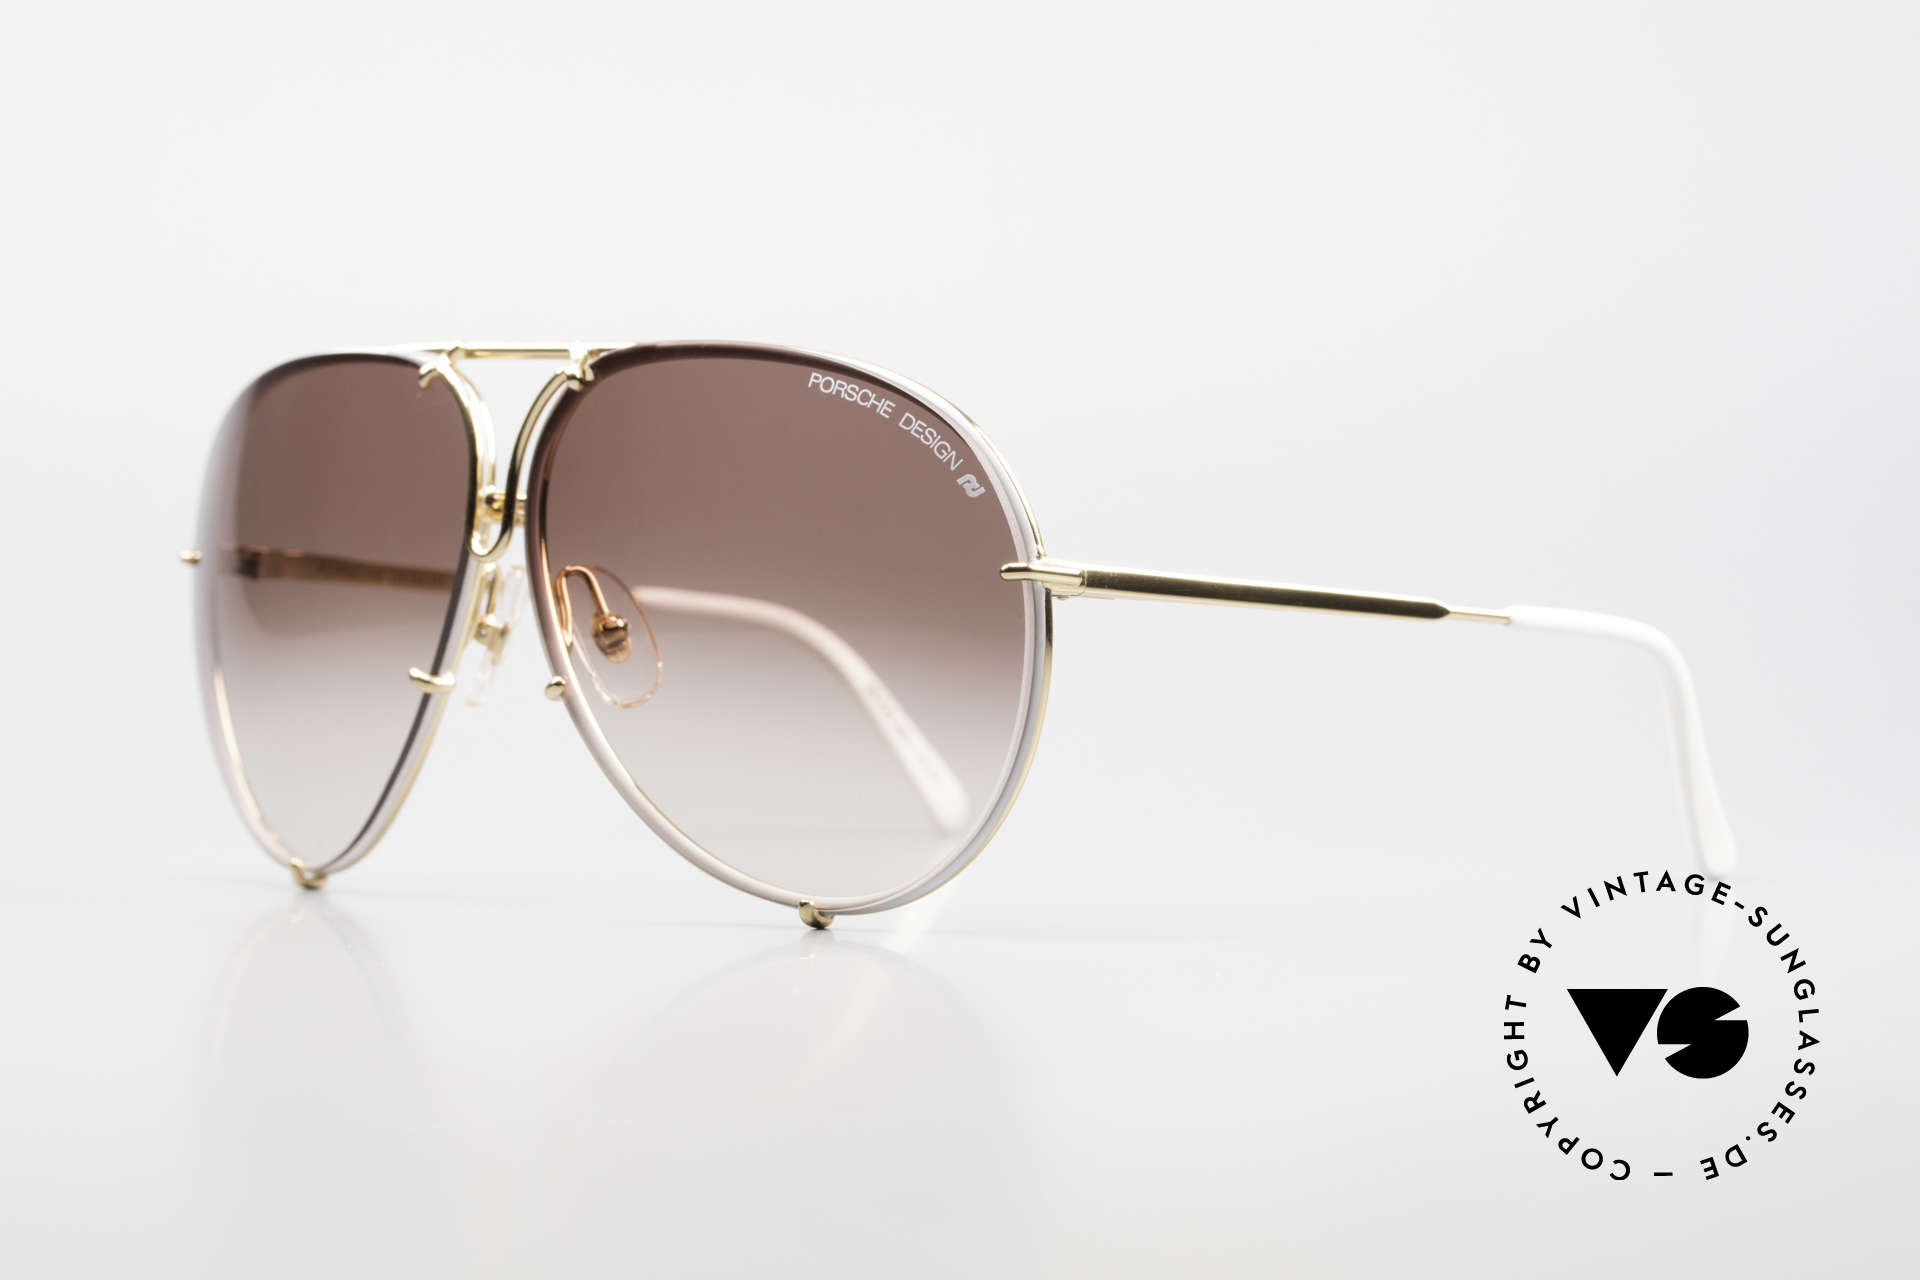 Porsche 5623 Special Edition Vintage Shades, one of the most wanted vintage models, WORLDWIDE!, Made for Men and Women